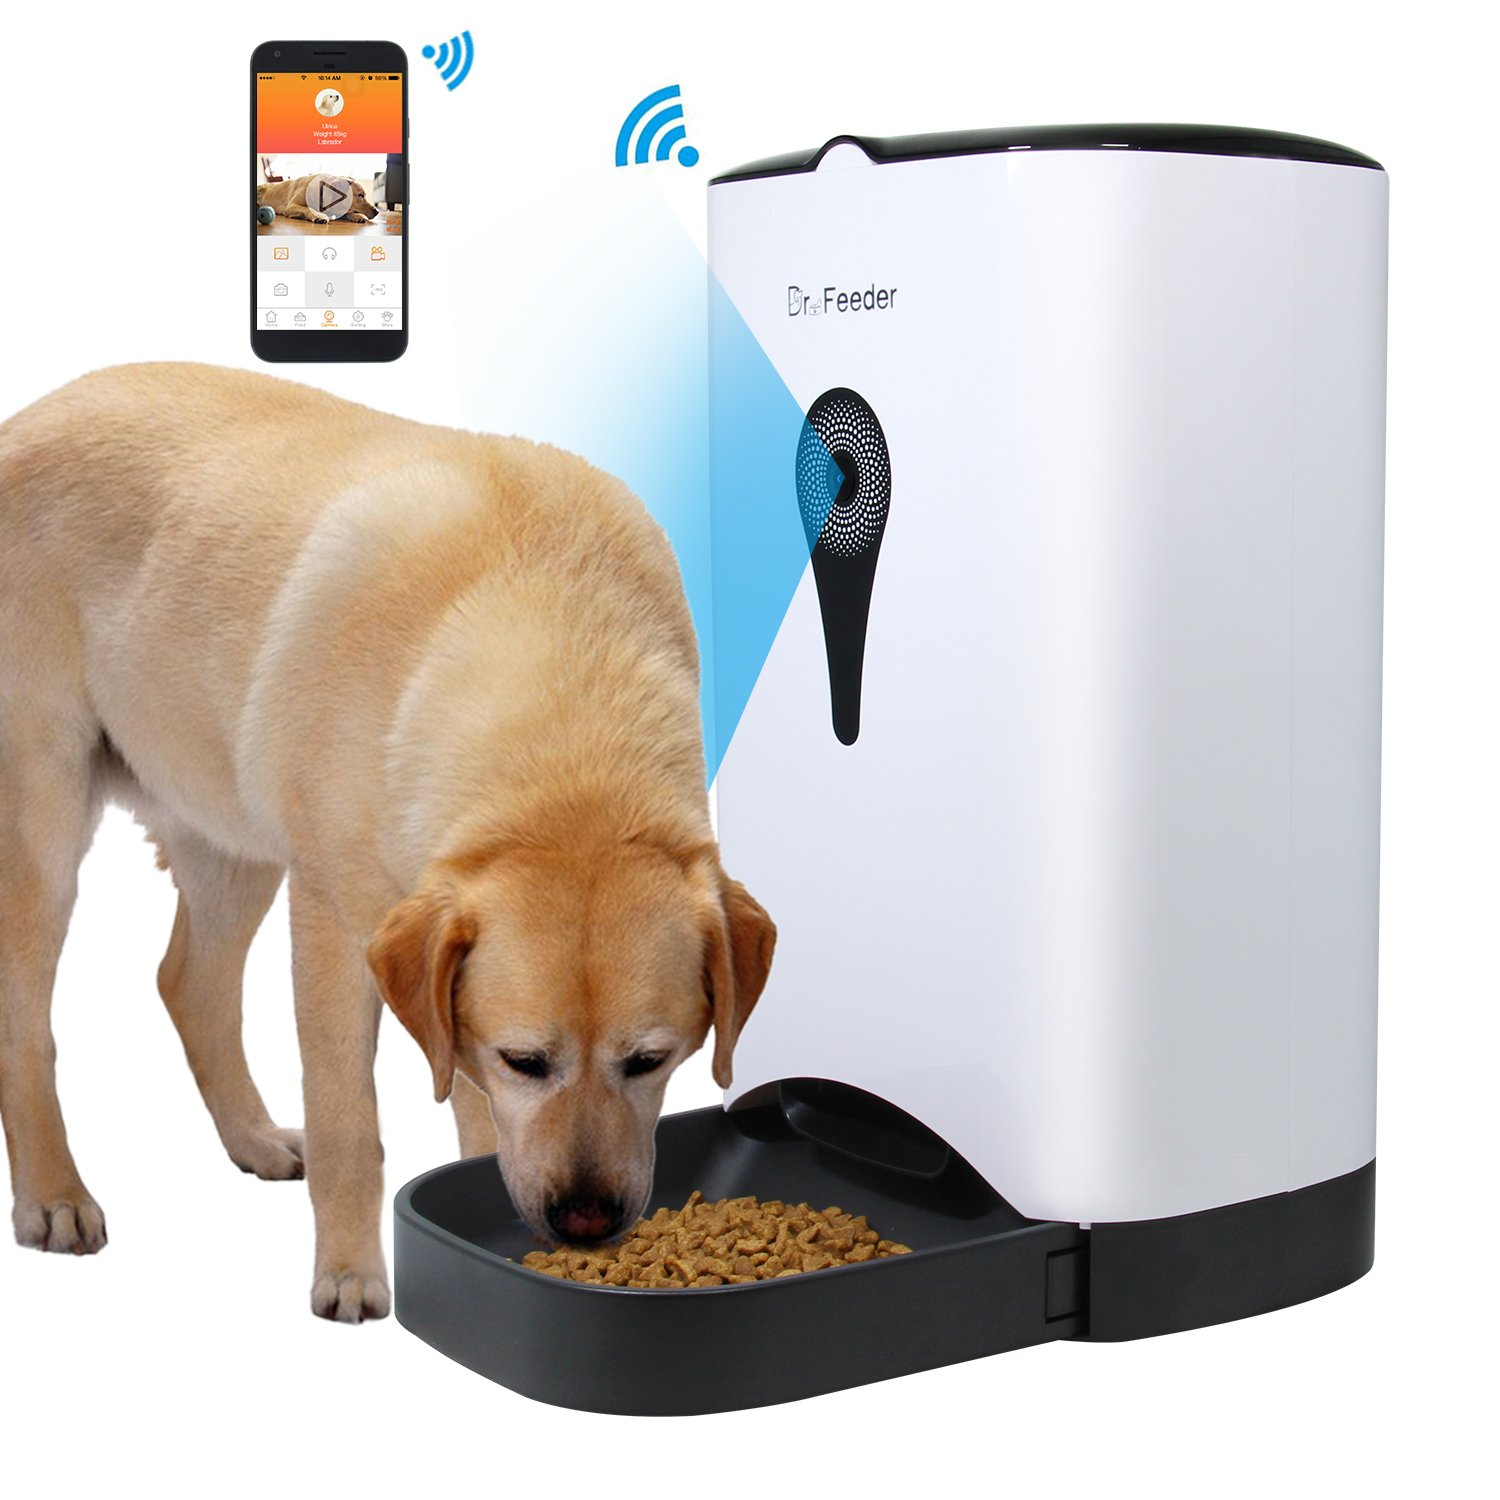 tchaassste video voice feeder control feeders precise chat remote surveillance automatic pet get in tag intelligent app mobile feeding of machine